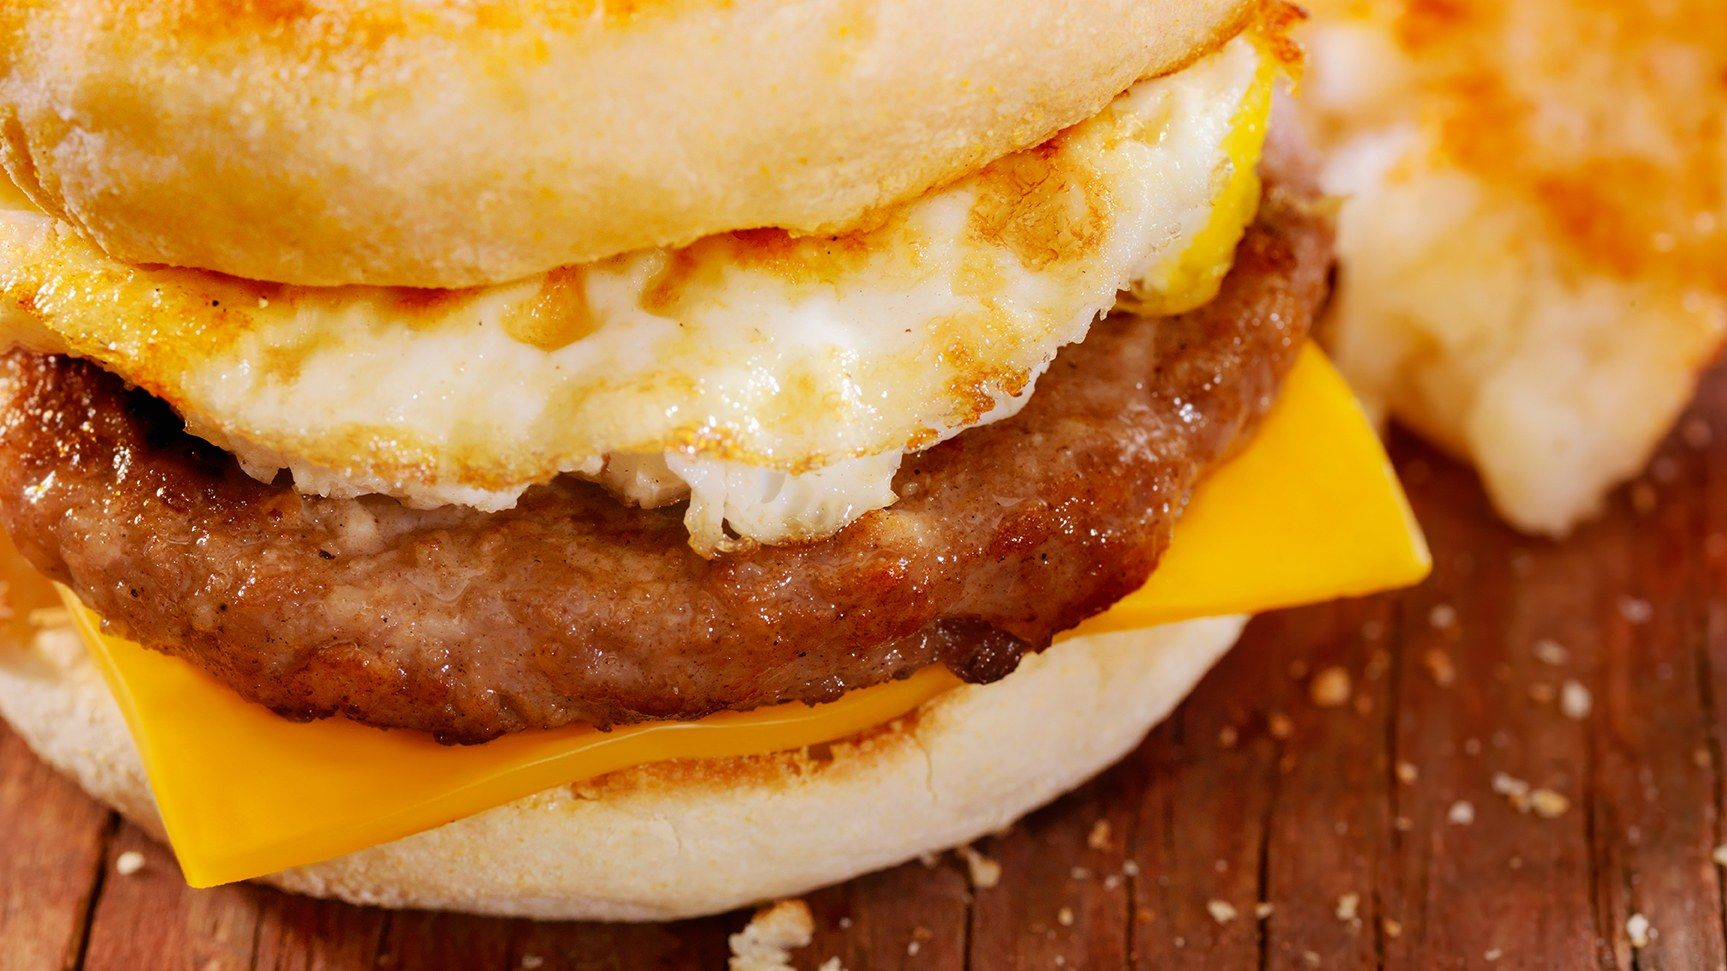 Freeze your own egg sandwiches and a breakfast hero